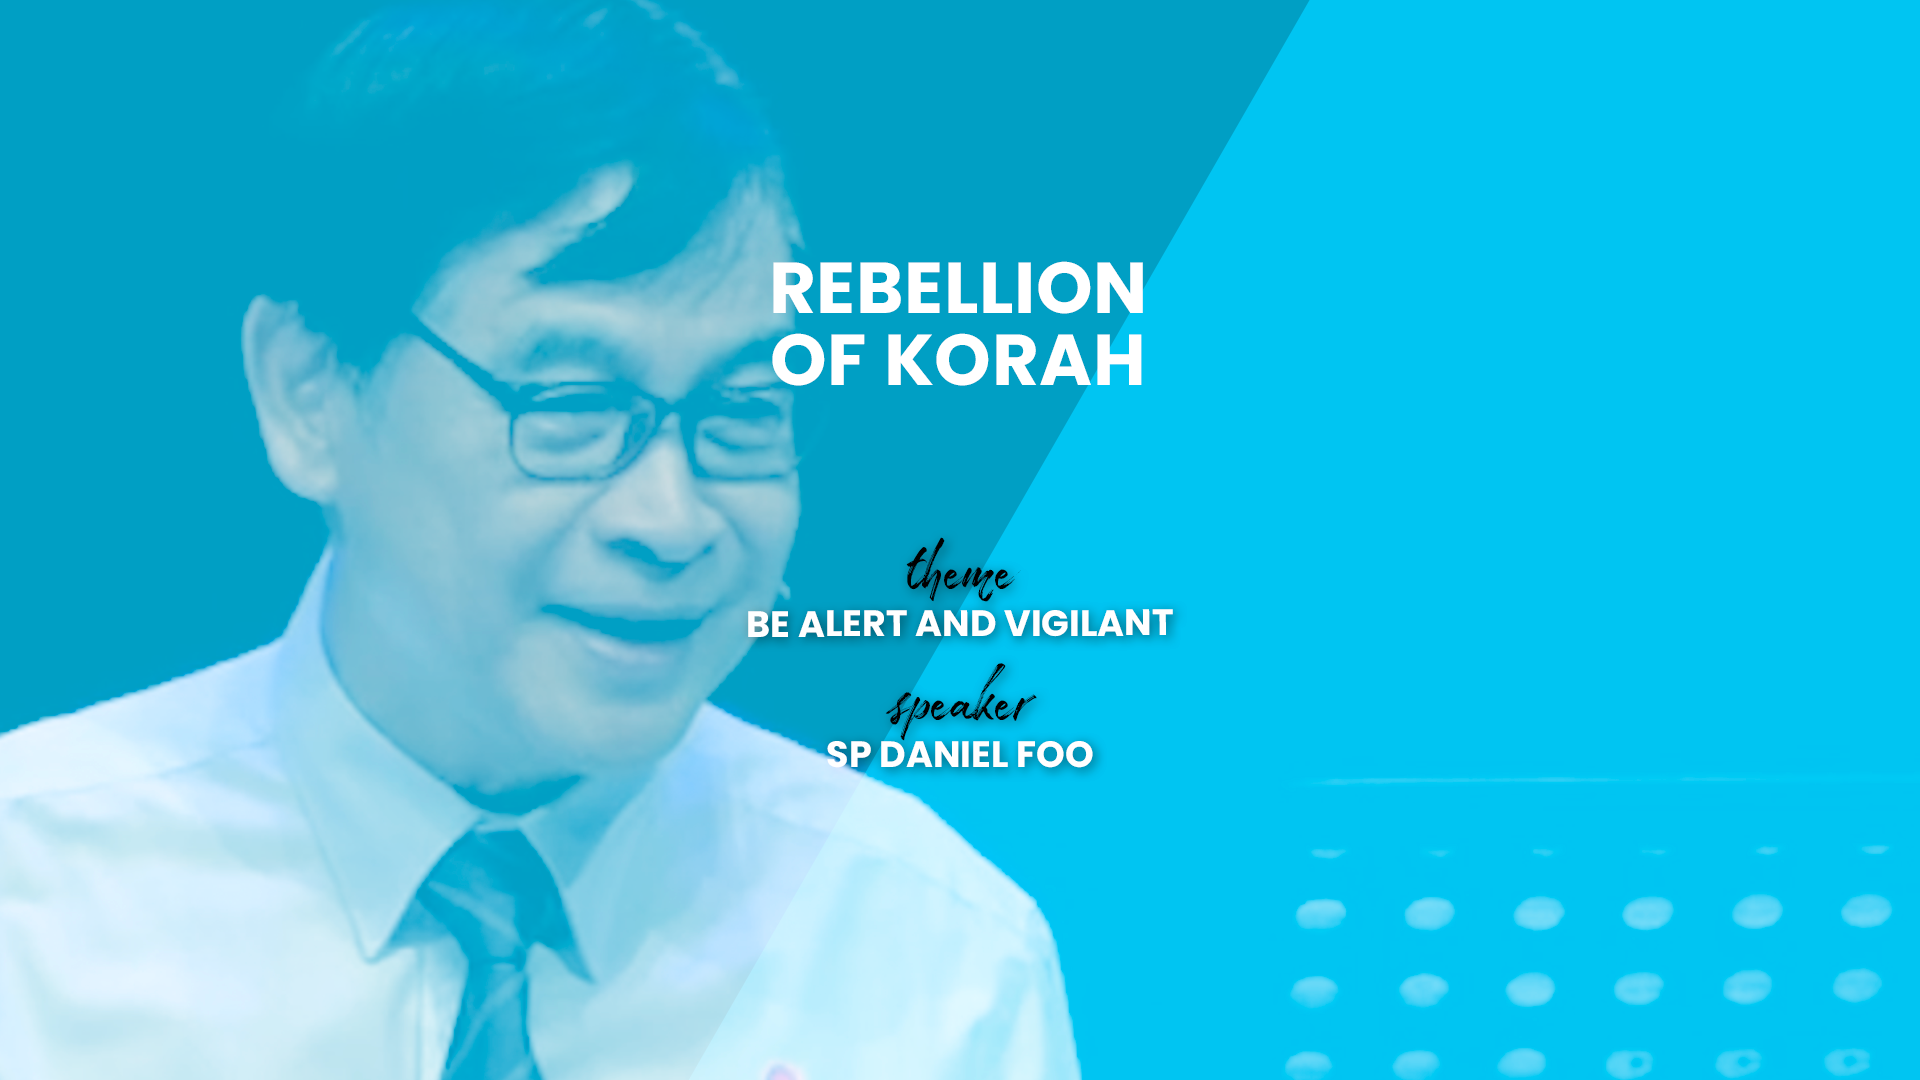 Rebellion of Korah